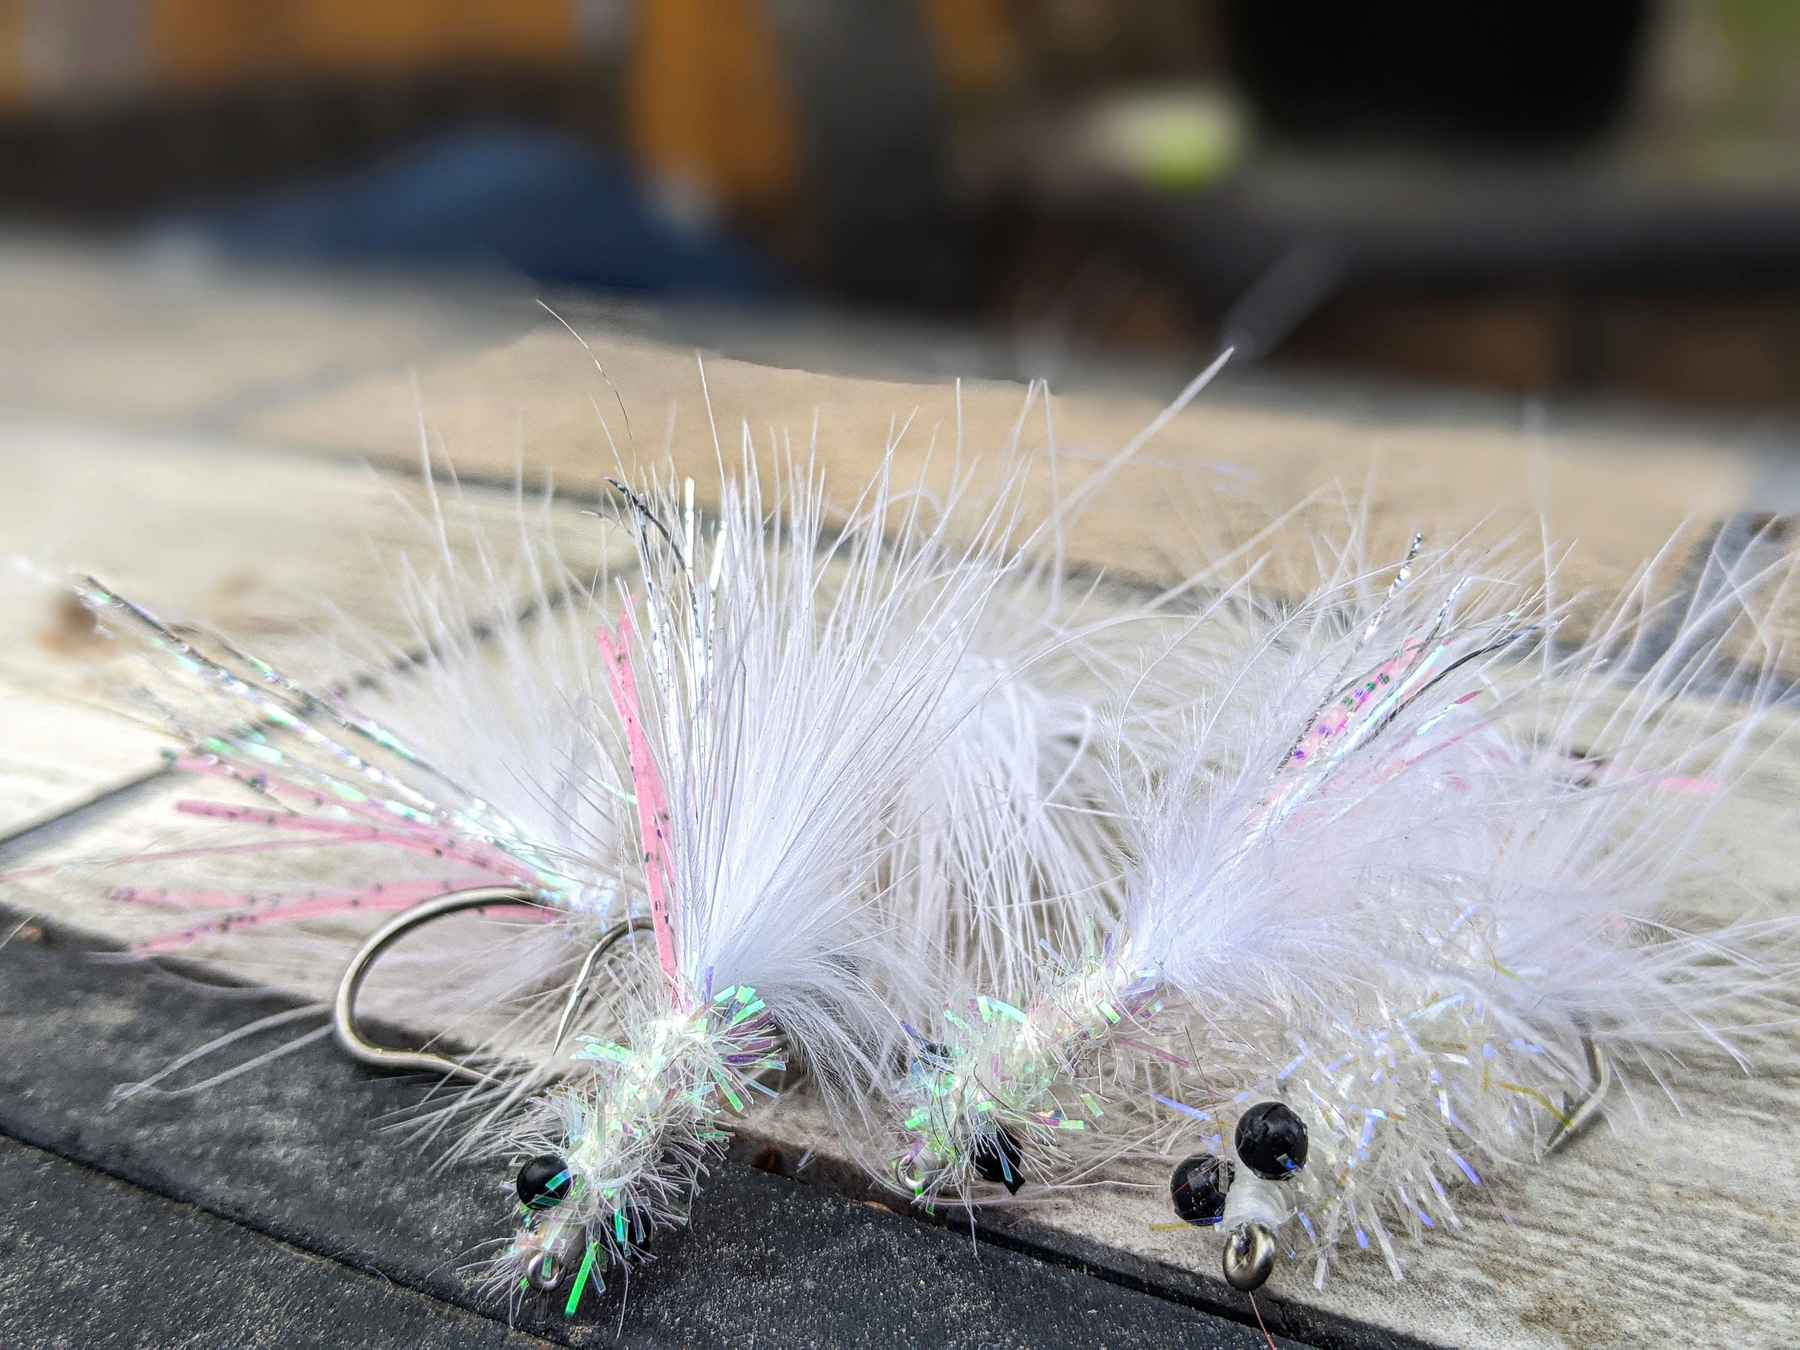 The Schminnow: 'The only fly you need'